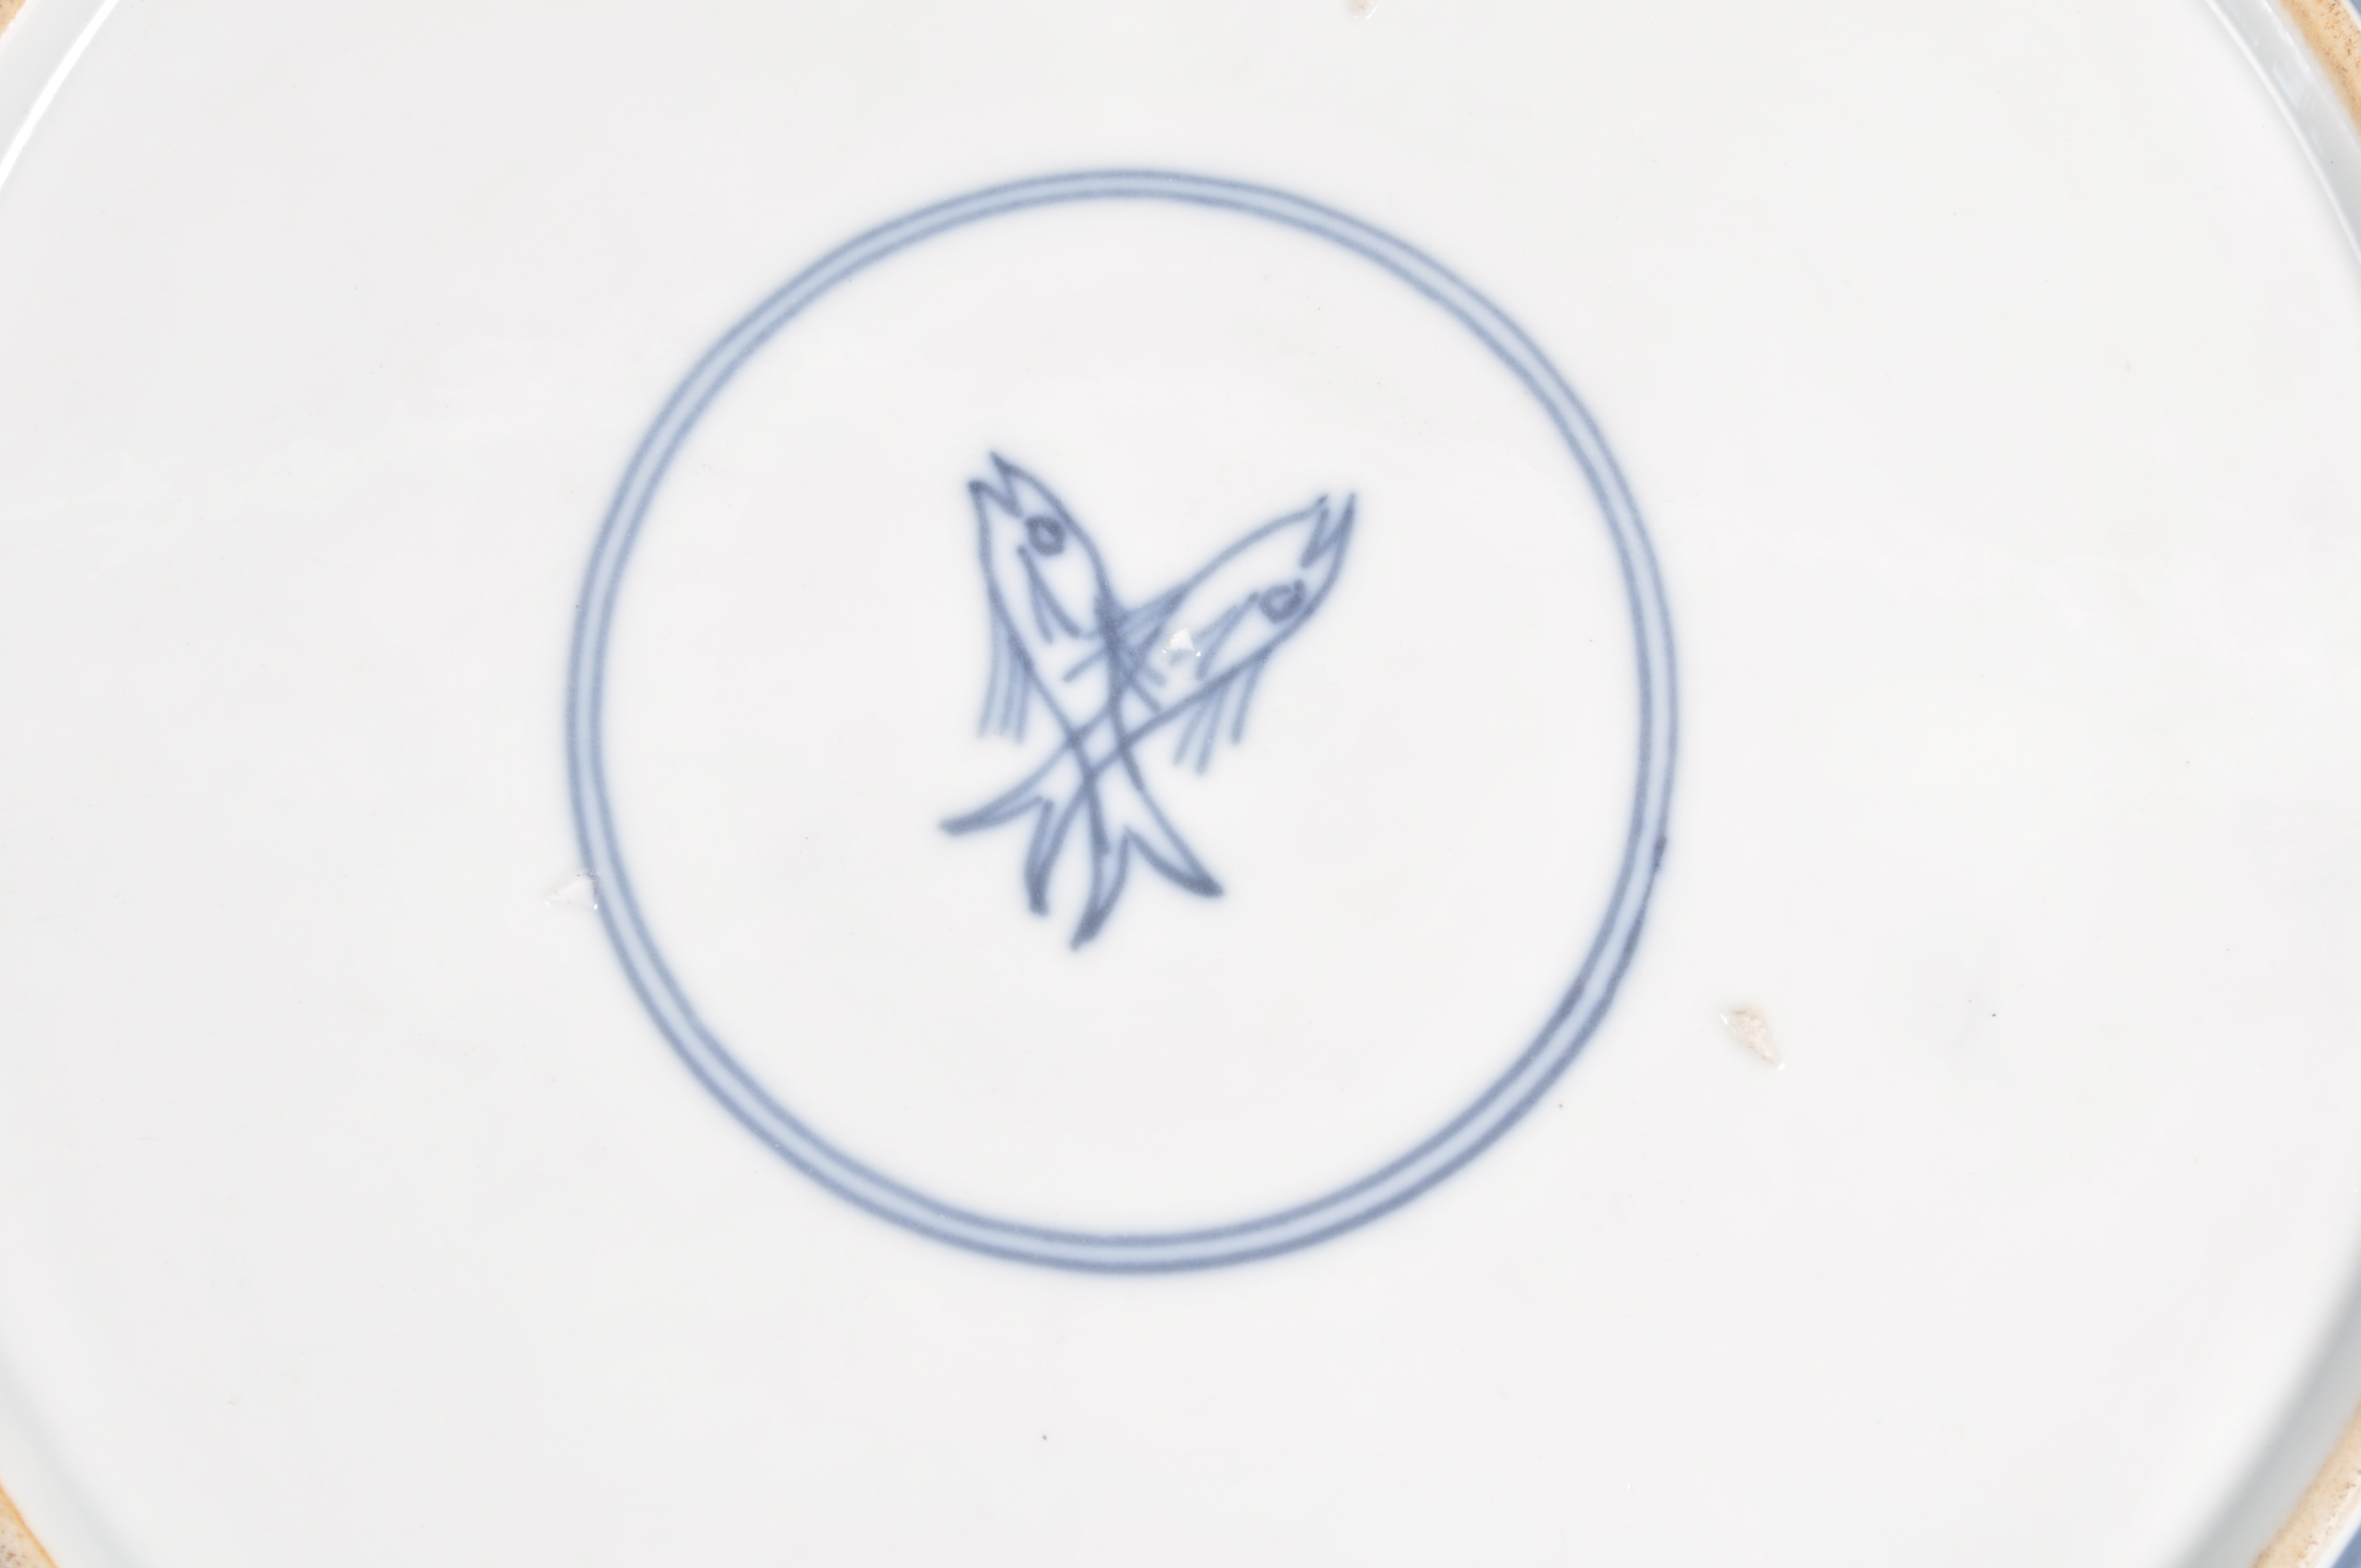 Lot 157 - BELIEVED CHINESE KANGXI BLUE POWDER PLATE WITH DOUBLE FISH MARK